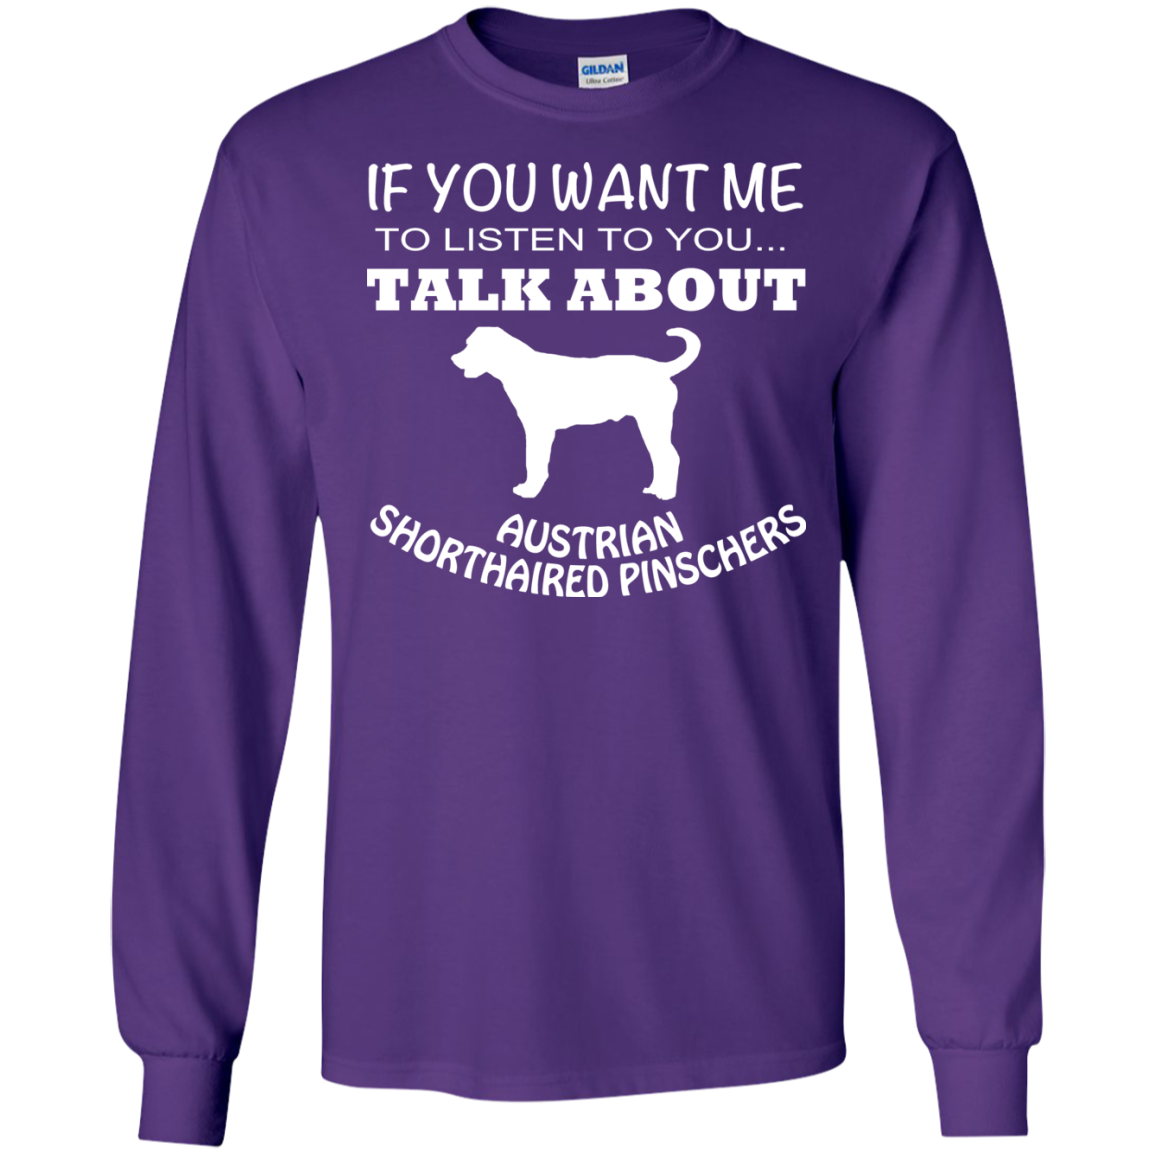 If You Want Me To Listen To You Talk About Australian Shorthaired Pinschers Long Sleeve Tees